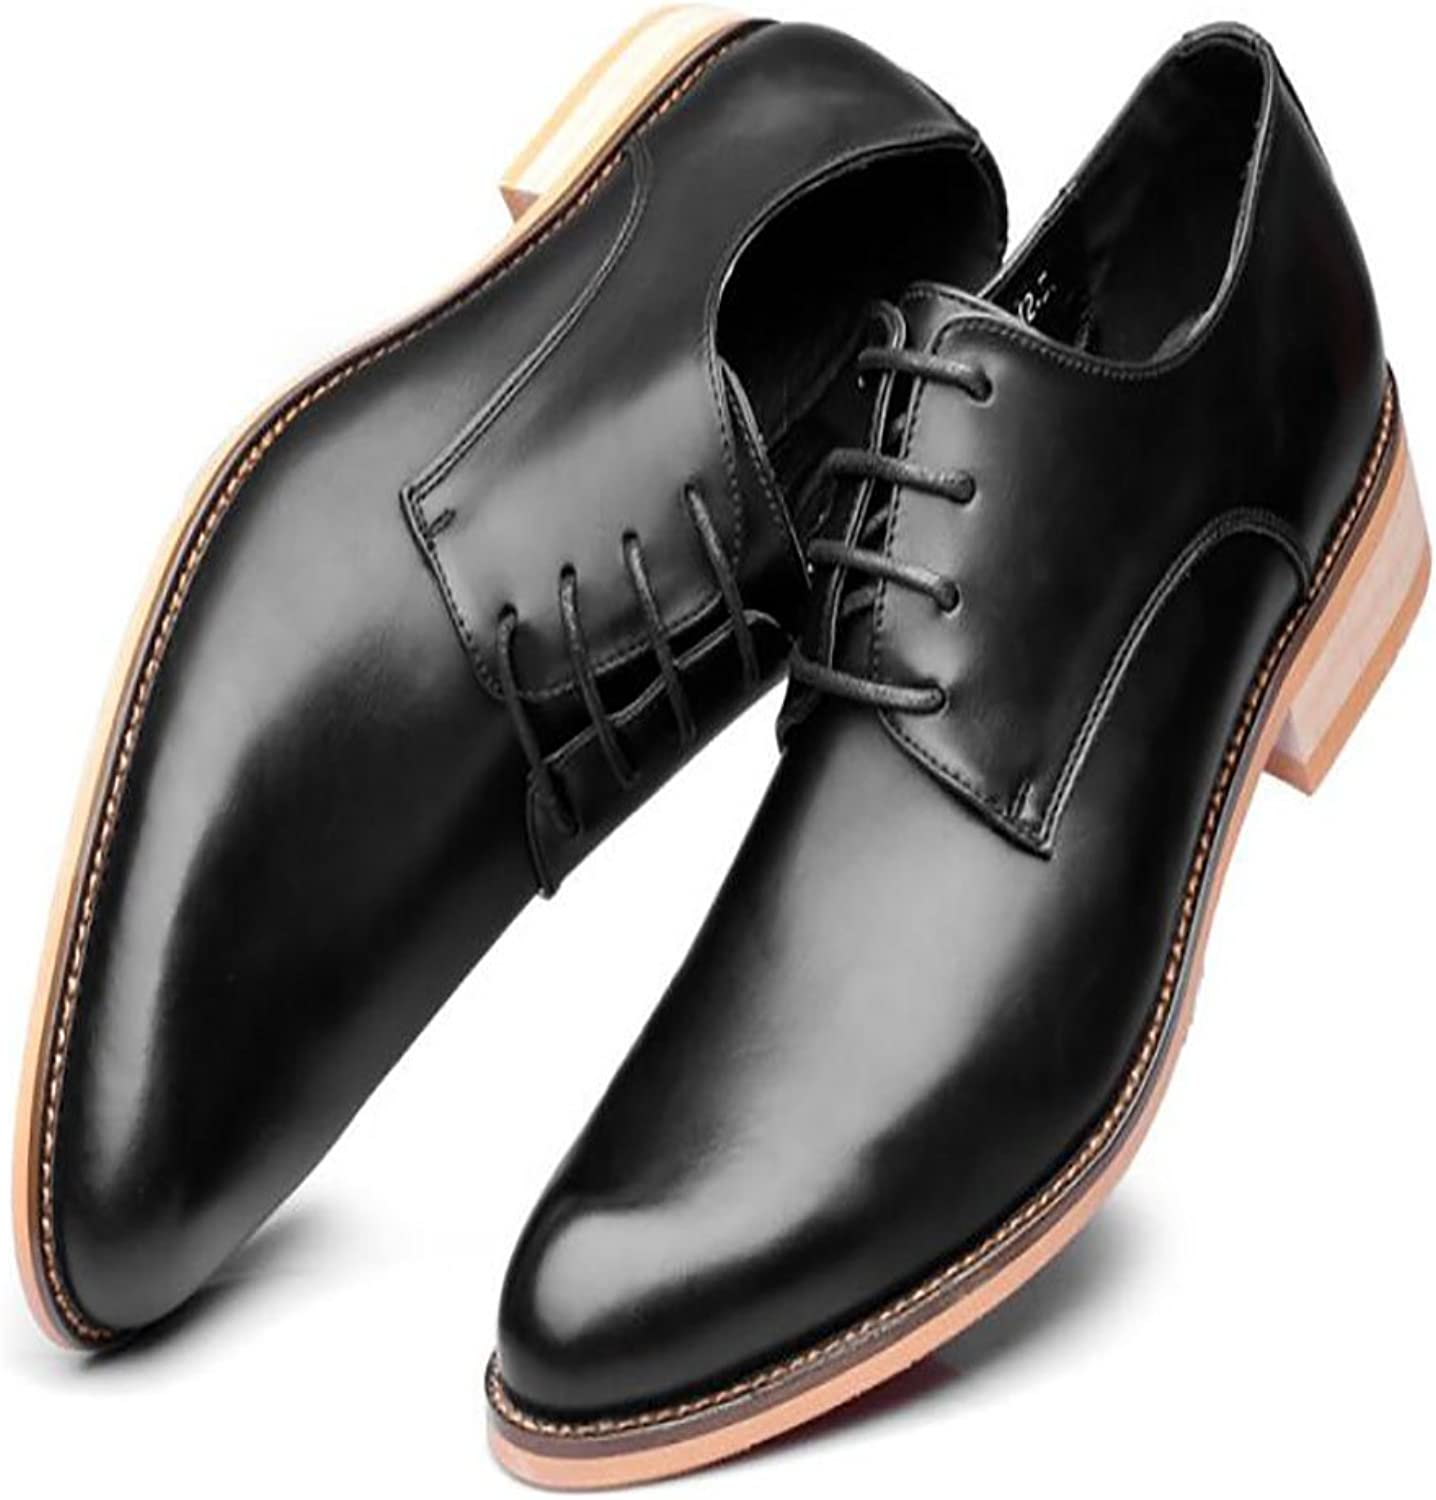 e0ea2089398 JIANF Men's Leather shoes Bullock Carved Men's Formal Men's British Fashion  Casual shoes shoes shoes nwpbfu3662-New Shoes